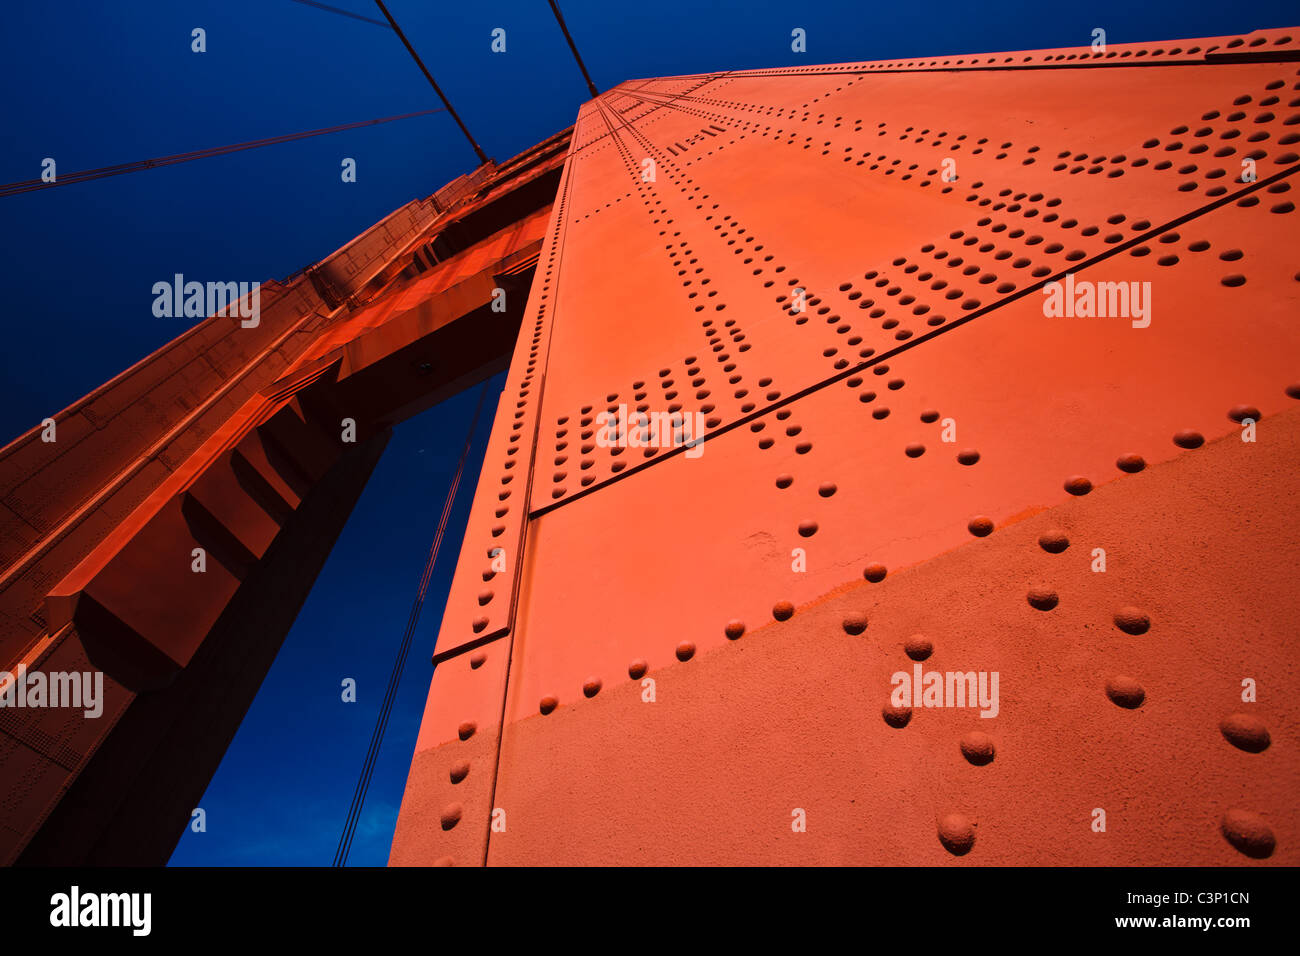 USA, San Francisco Kalifornien - architektonisches Detail der Golden Gate Bridge Tower Stockbild